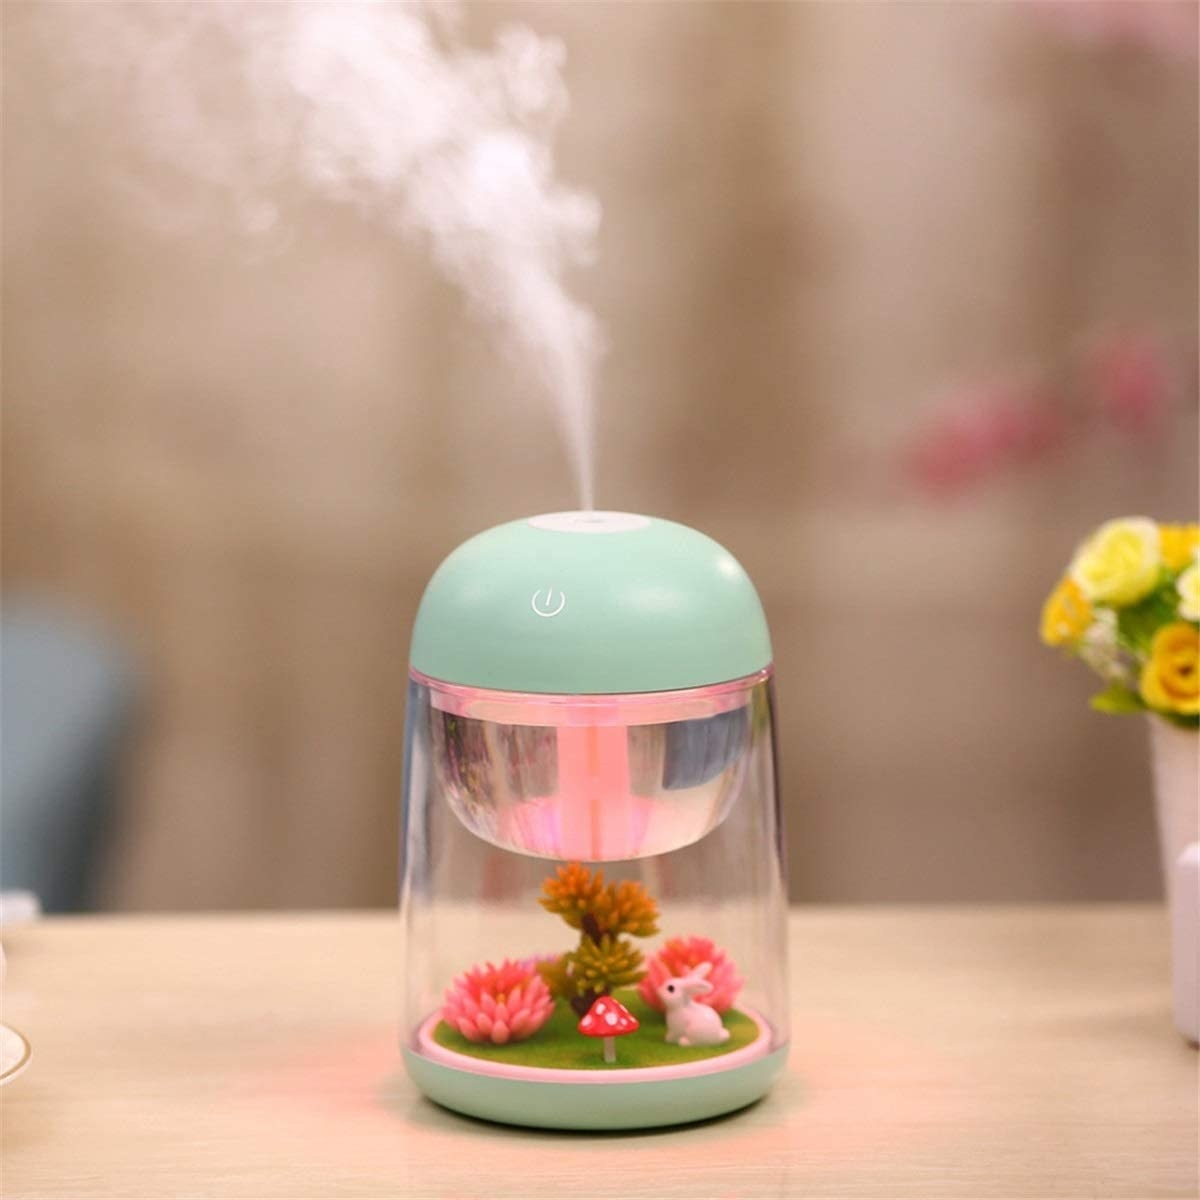 the small blue humidifier with a bunny and mushroom and other plants inside